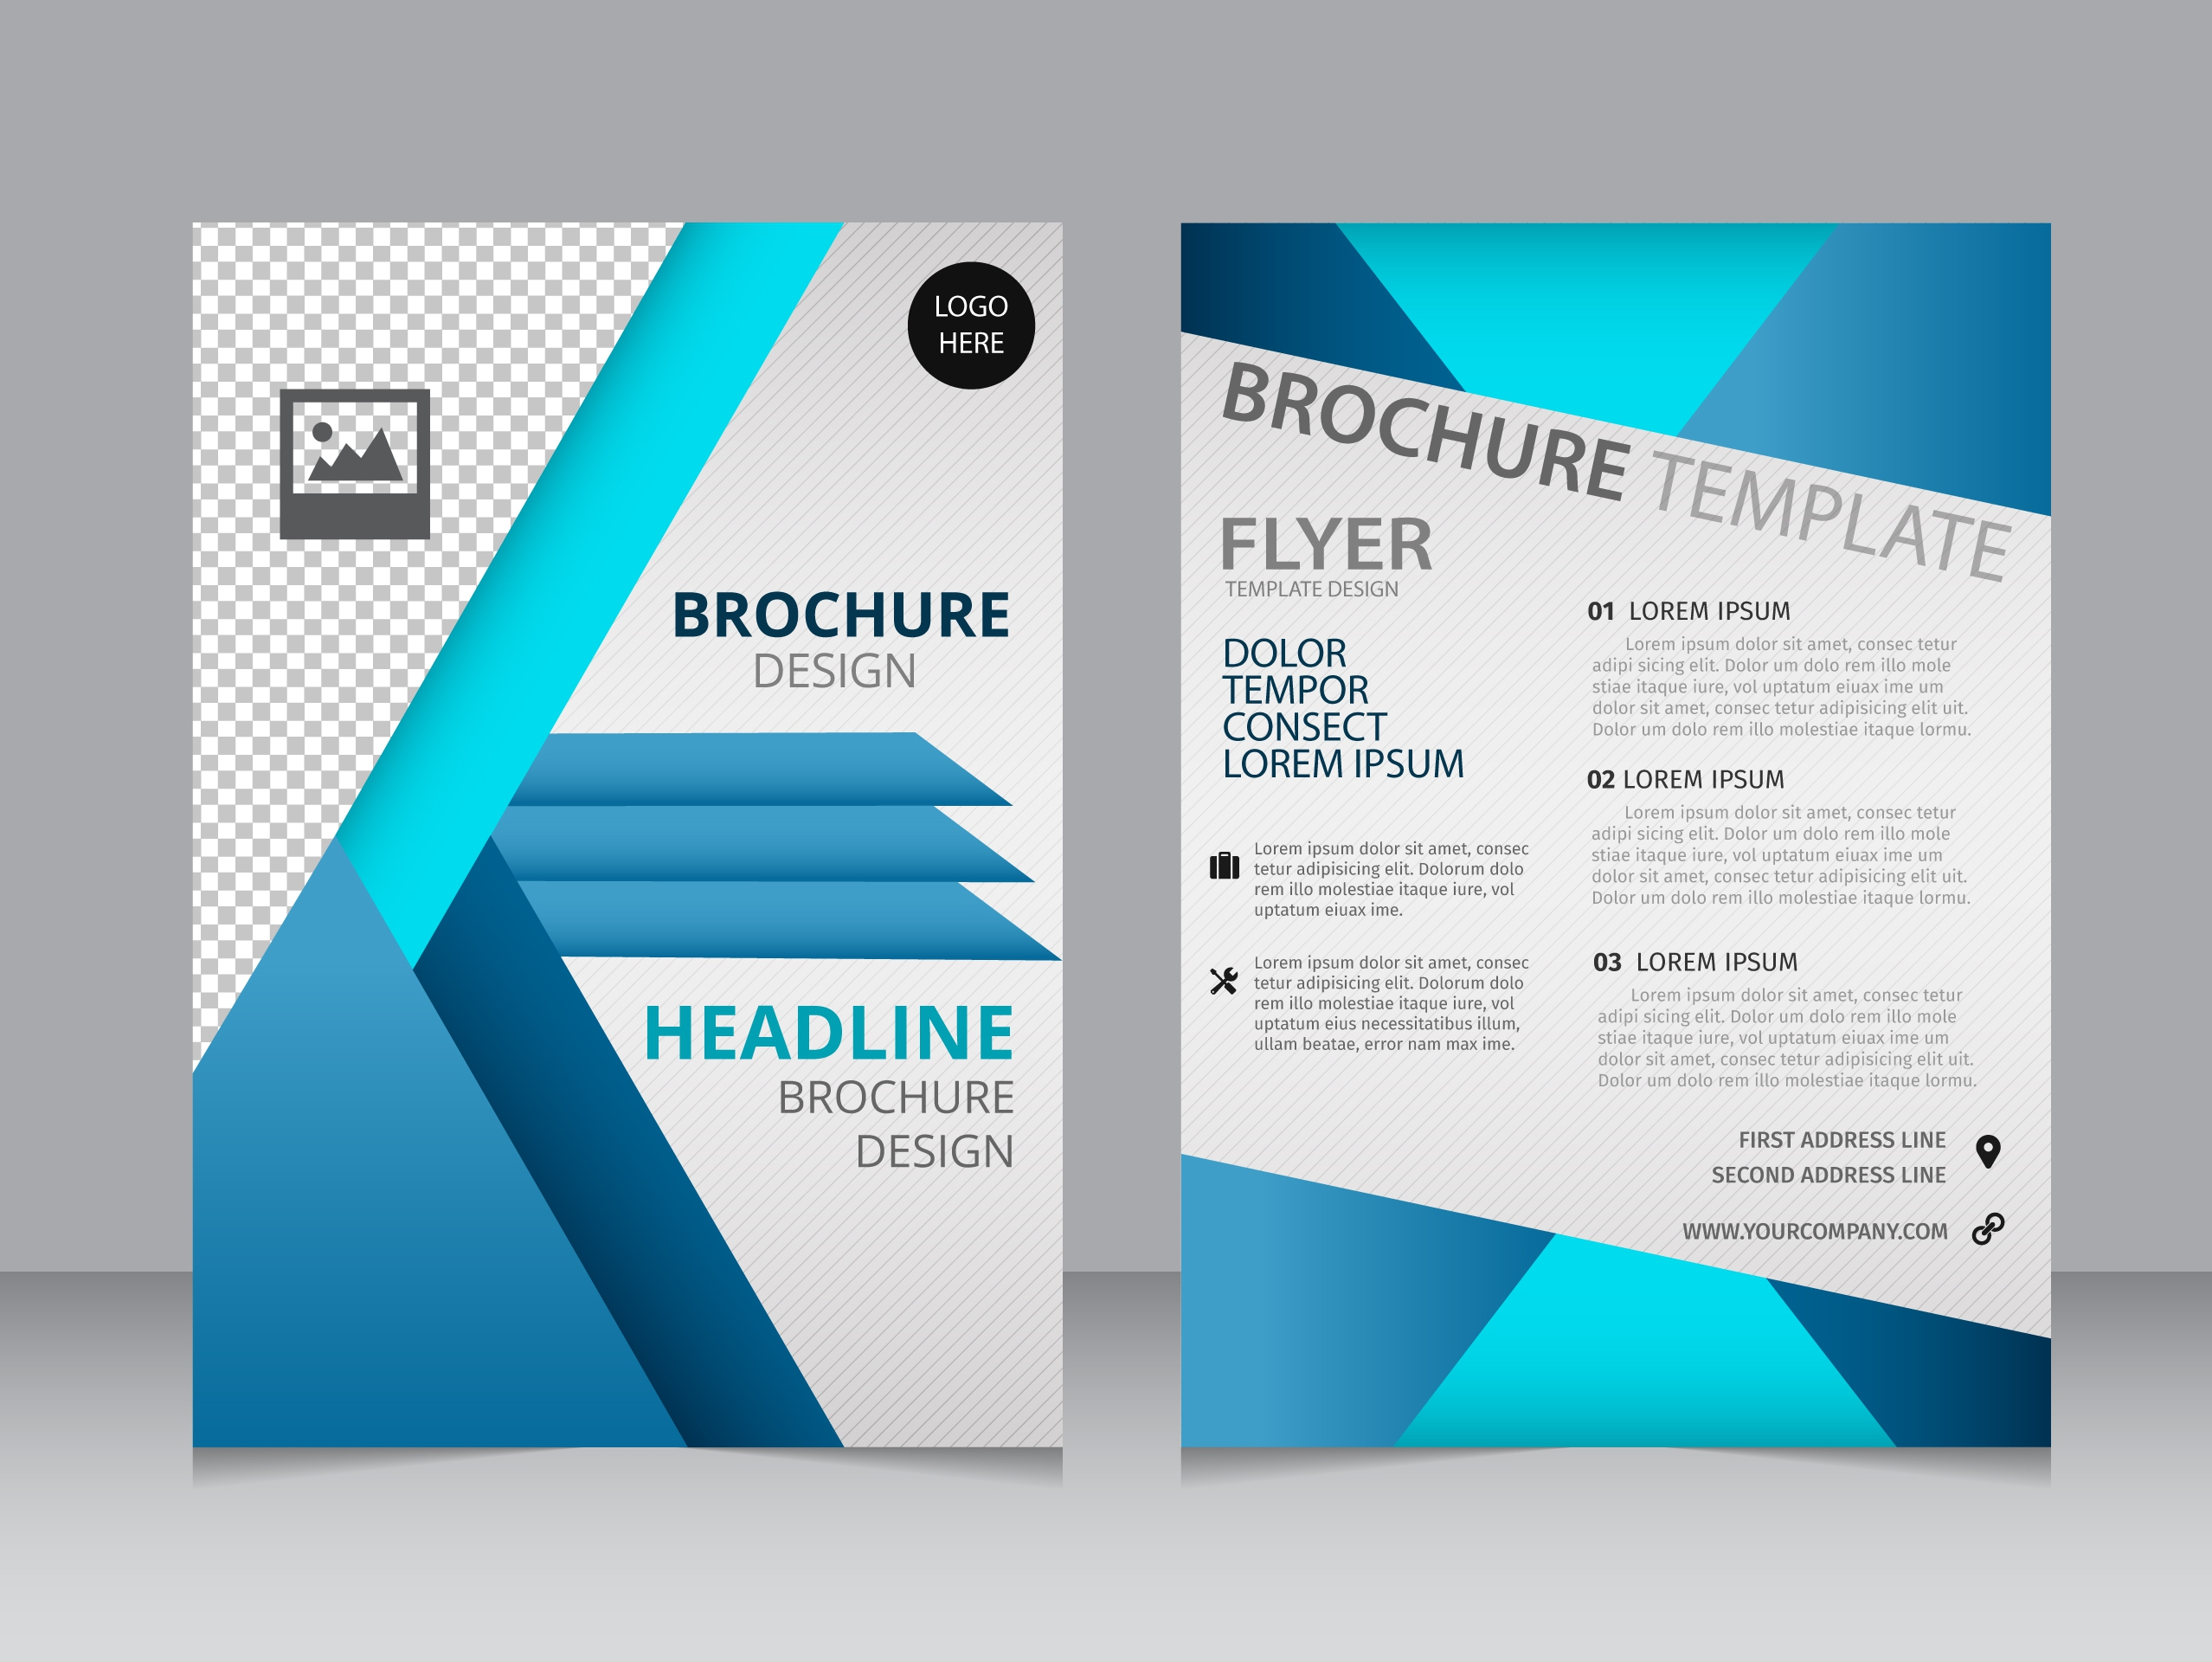 brochure samples templates - 11 free sample travel brochure templates printable samples